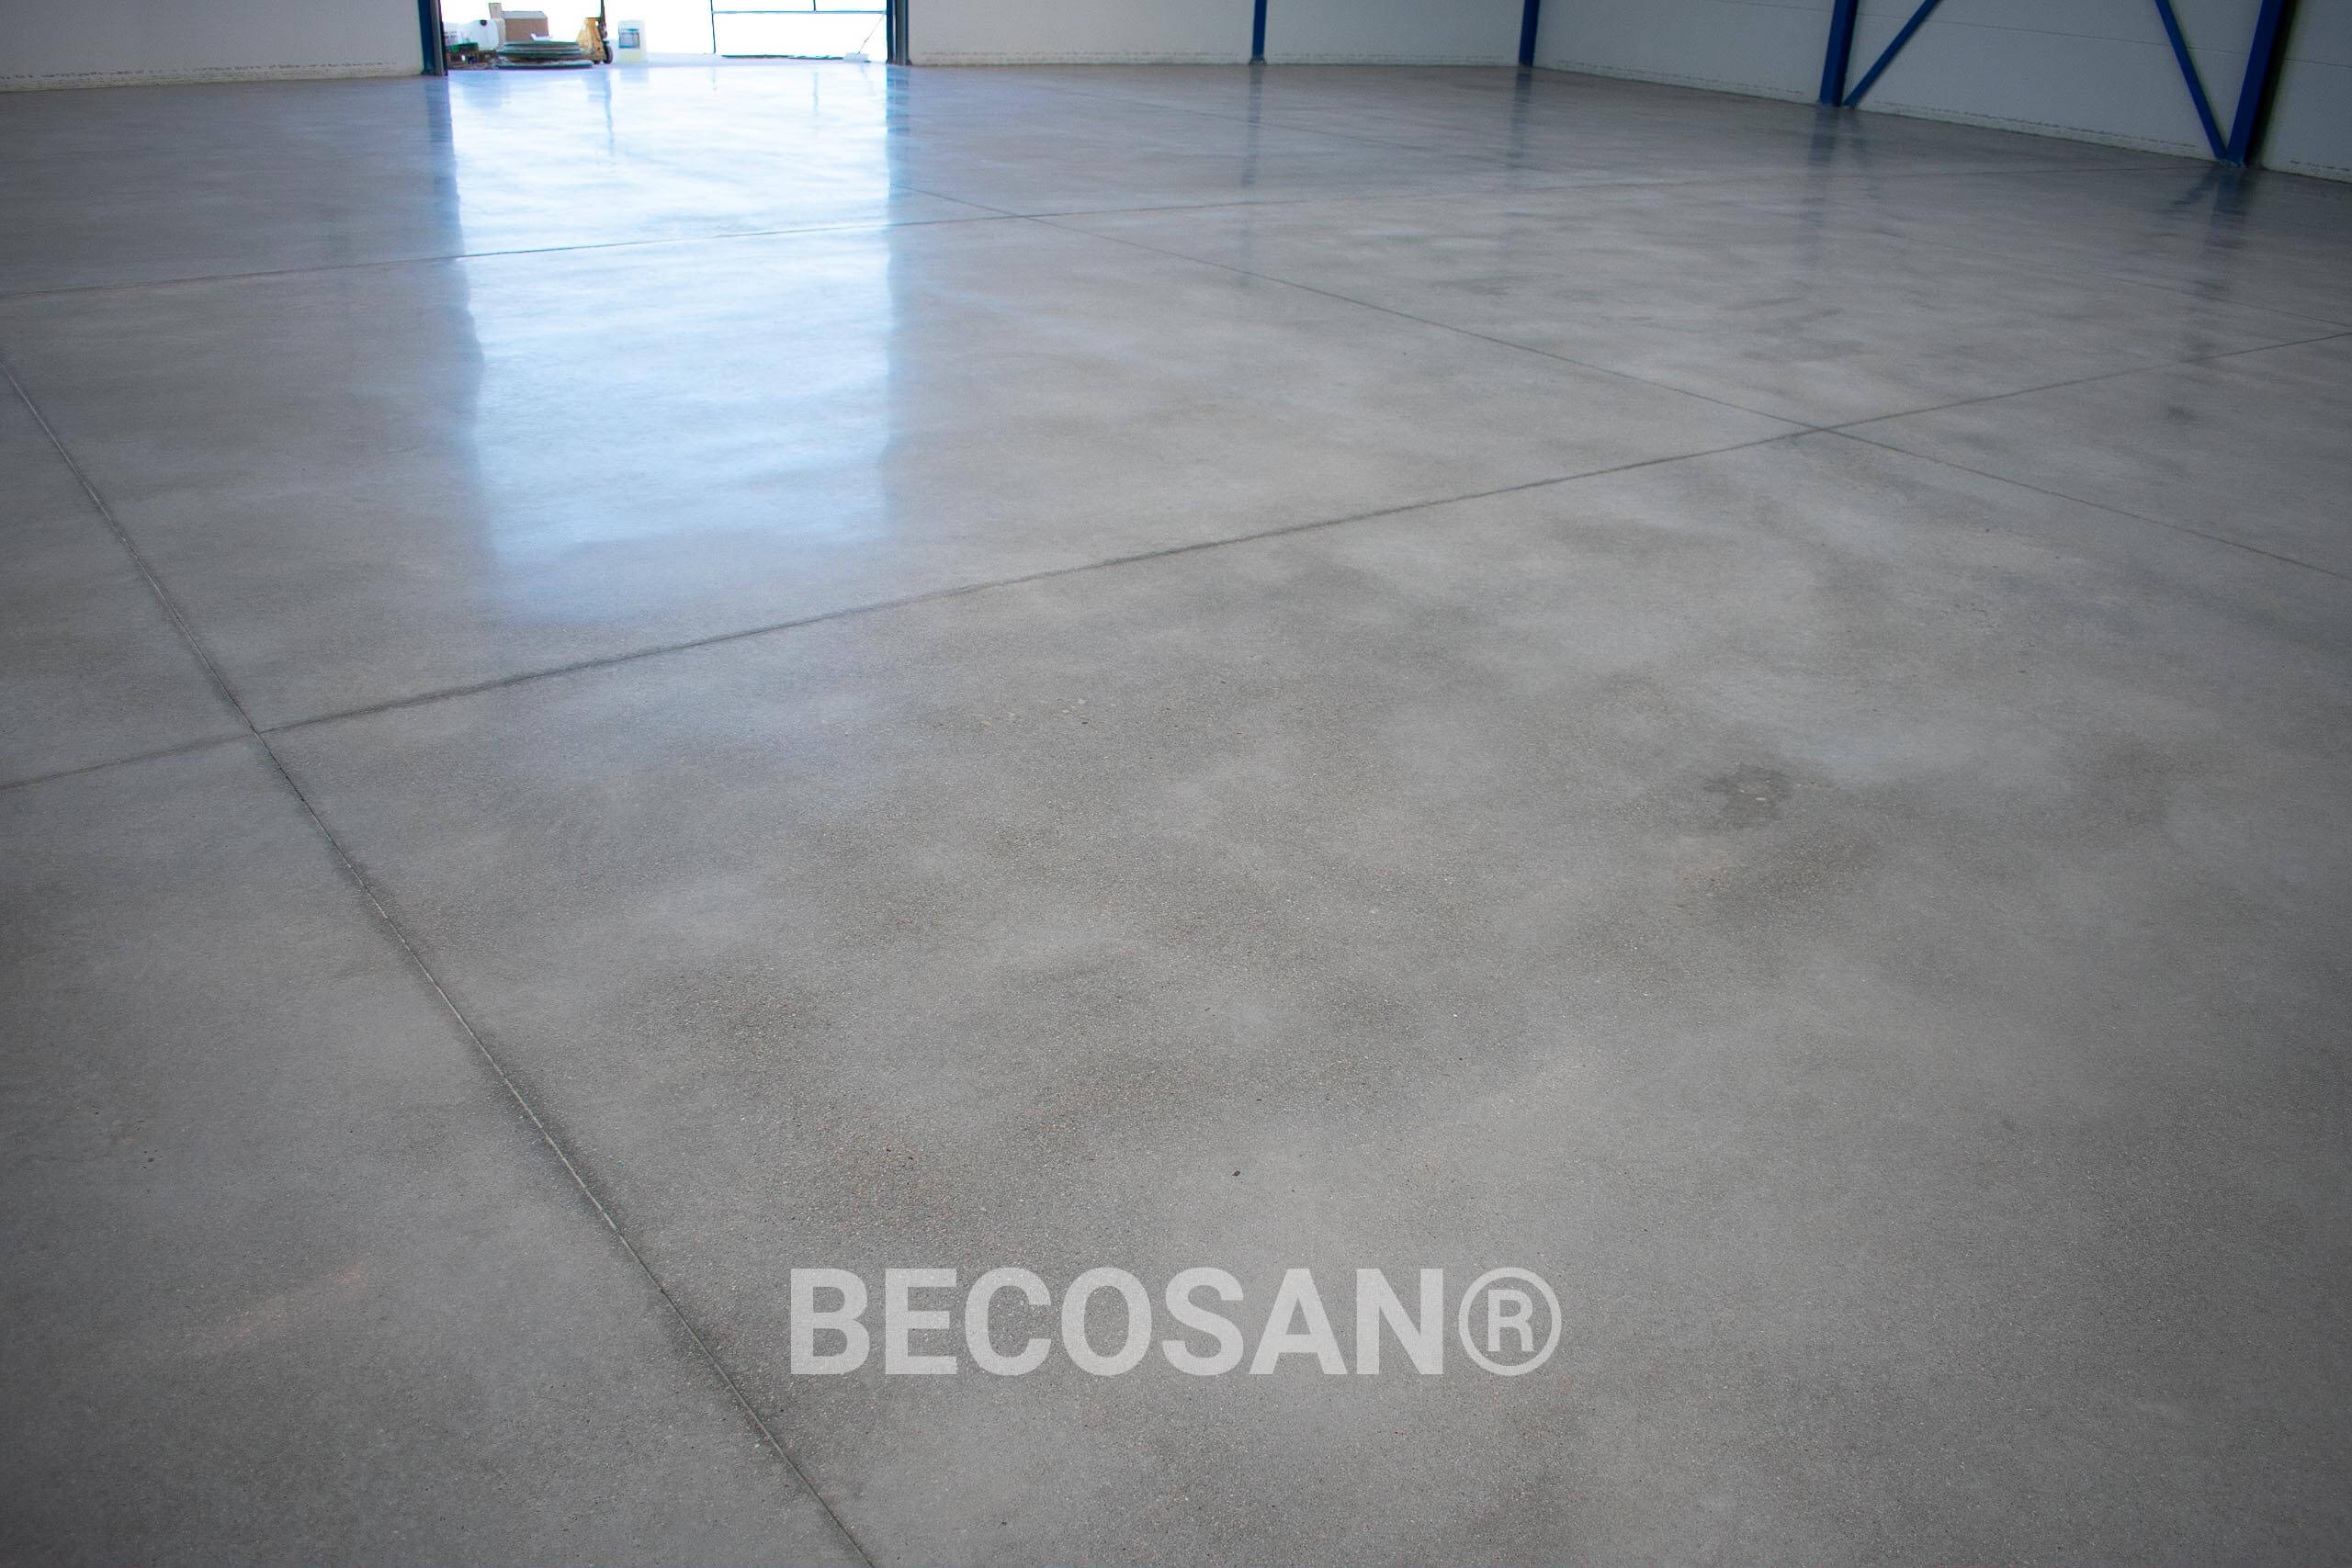 Tyre Marks Problem Warehouse Concrete Floor 10